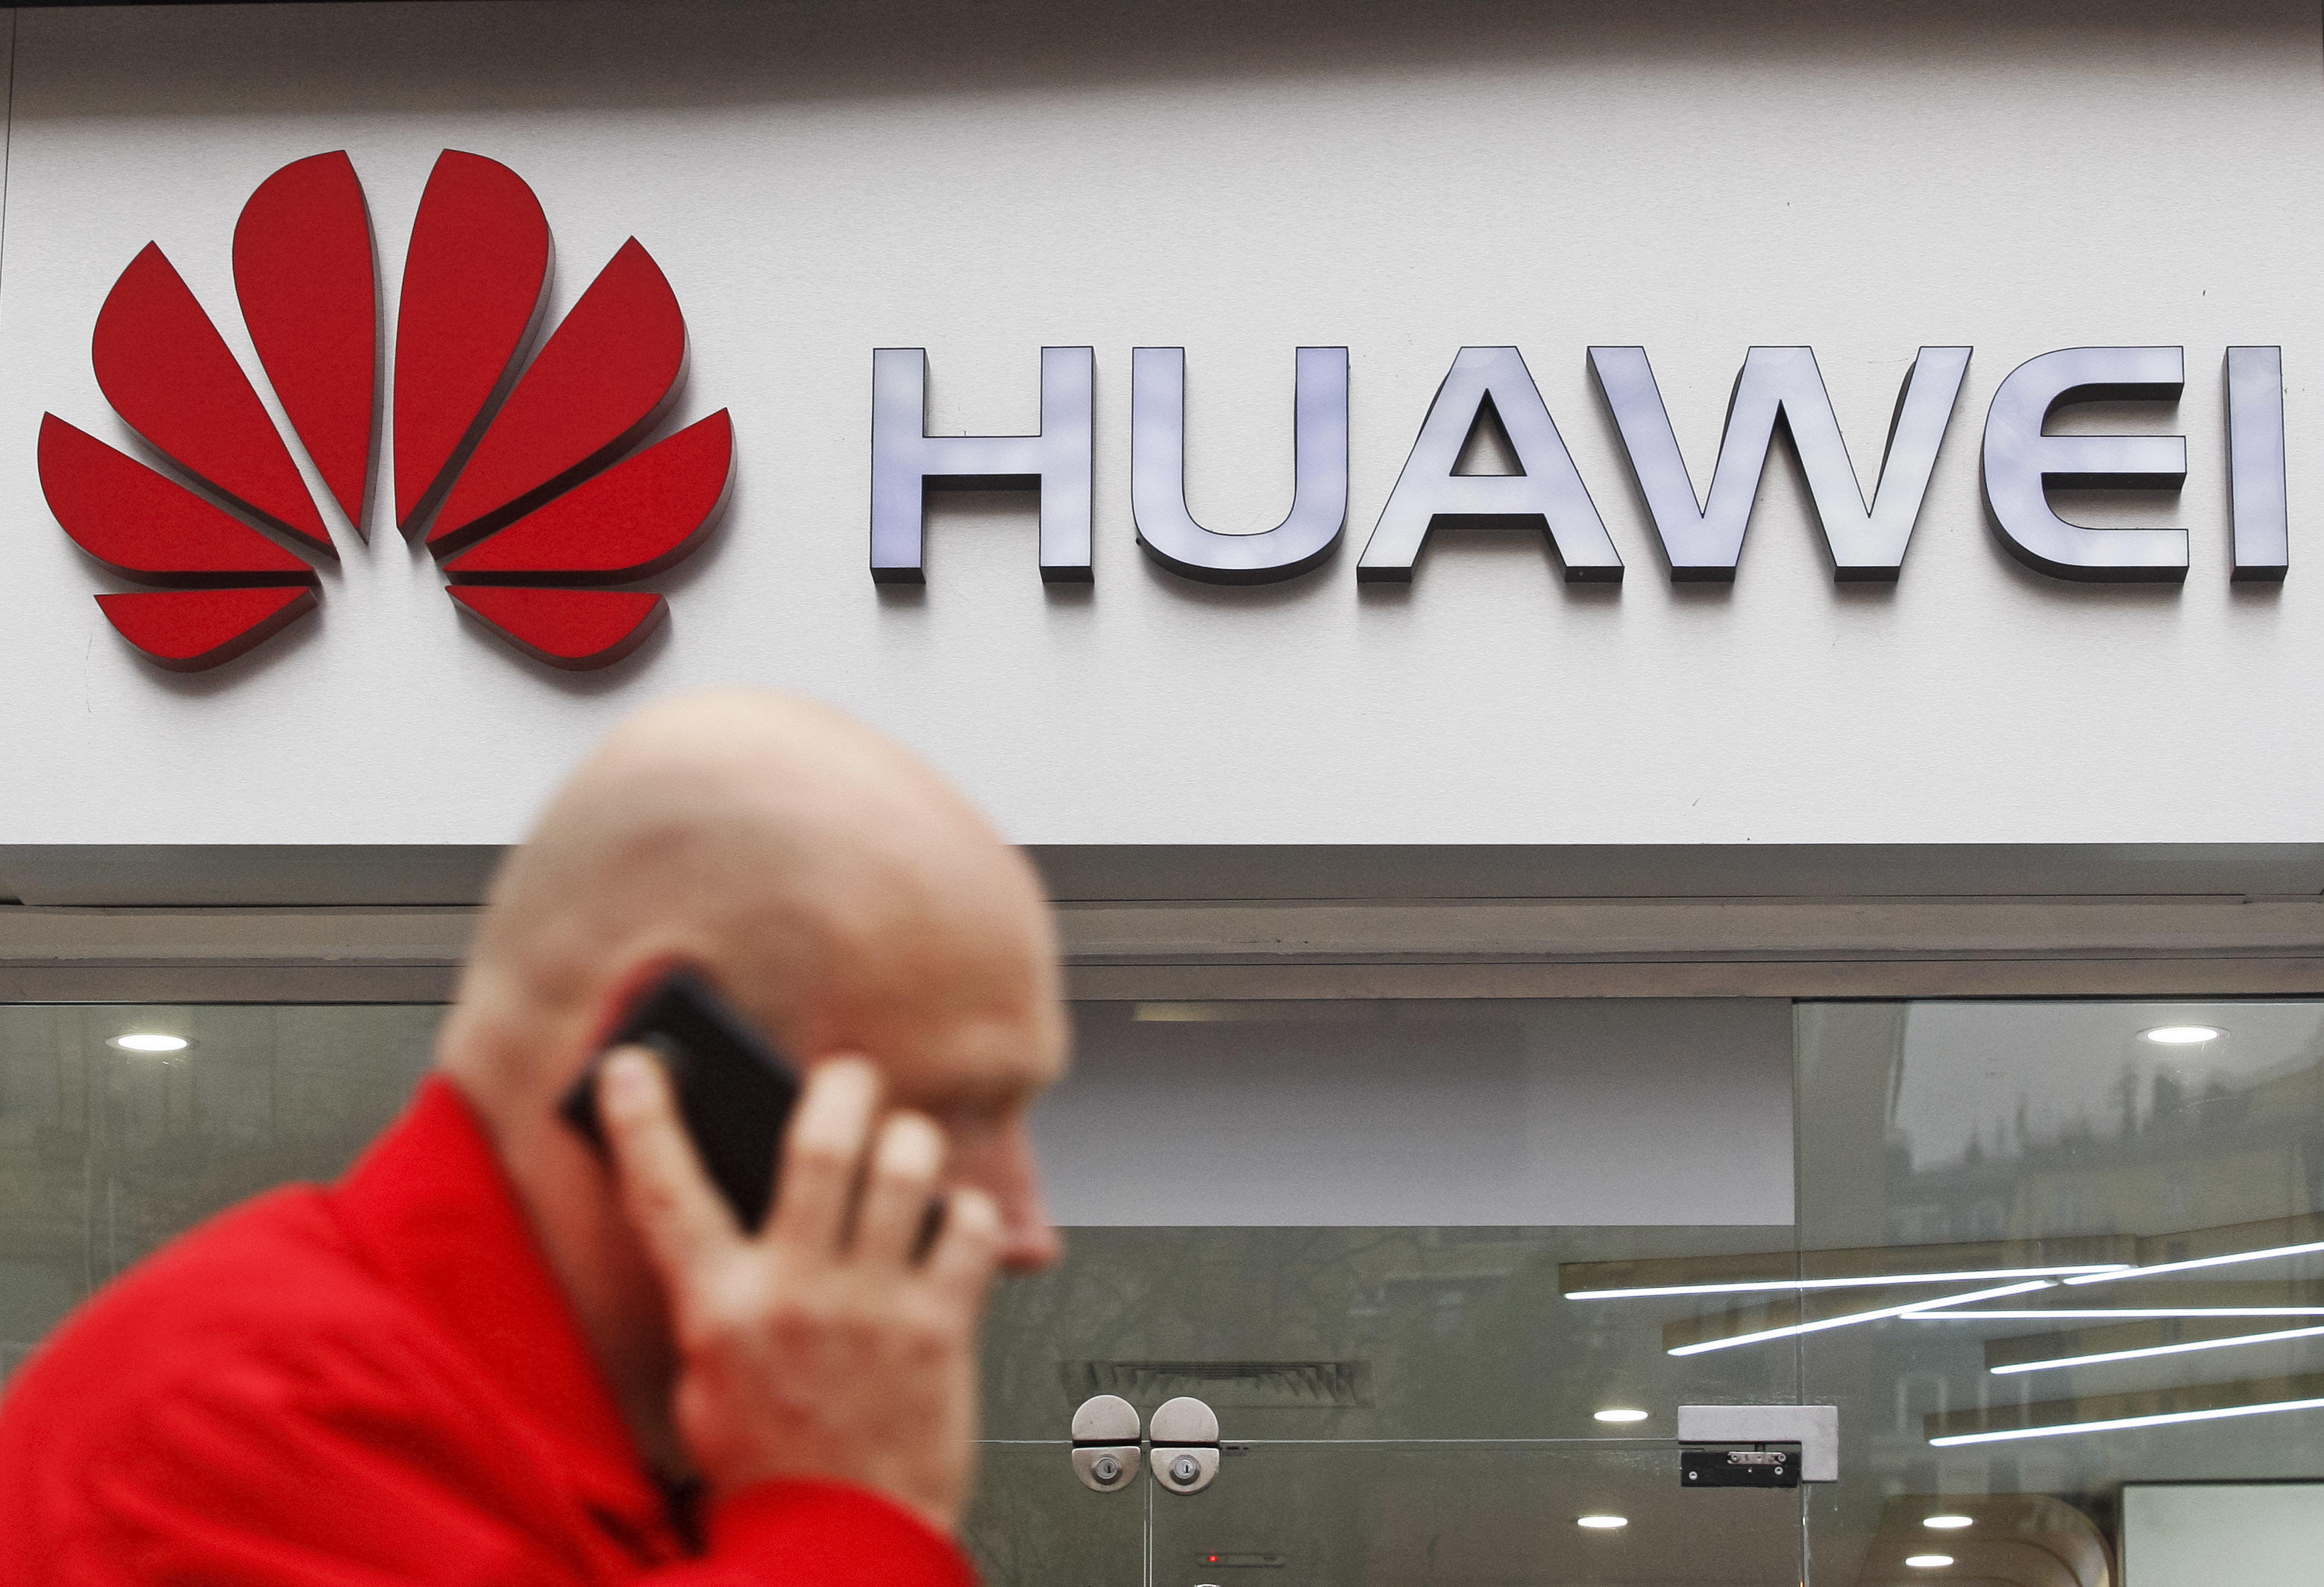 India is set to lock Huawei and ZTE out of its 5G rollout